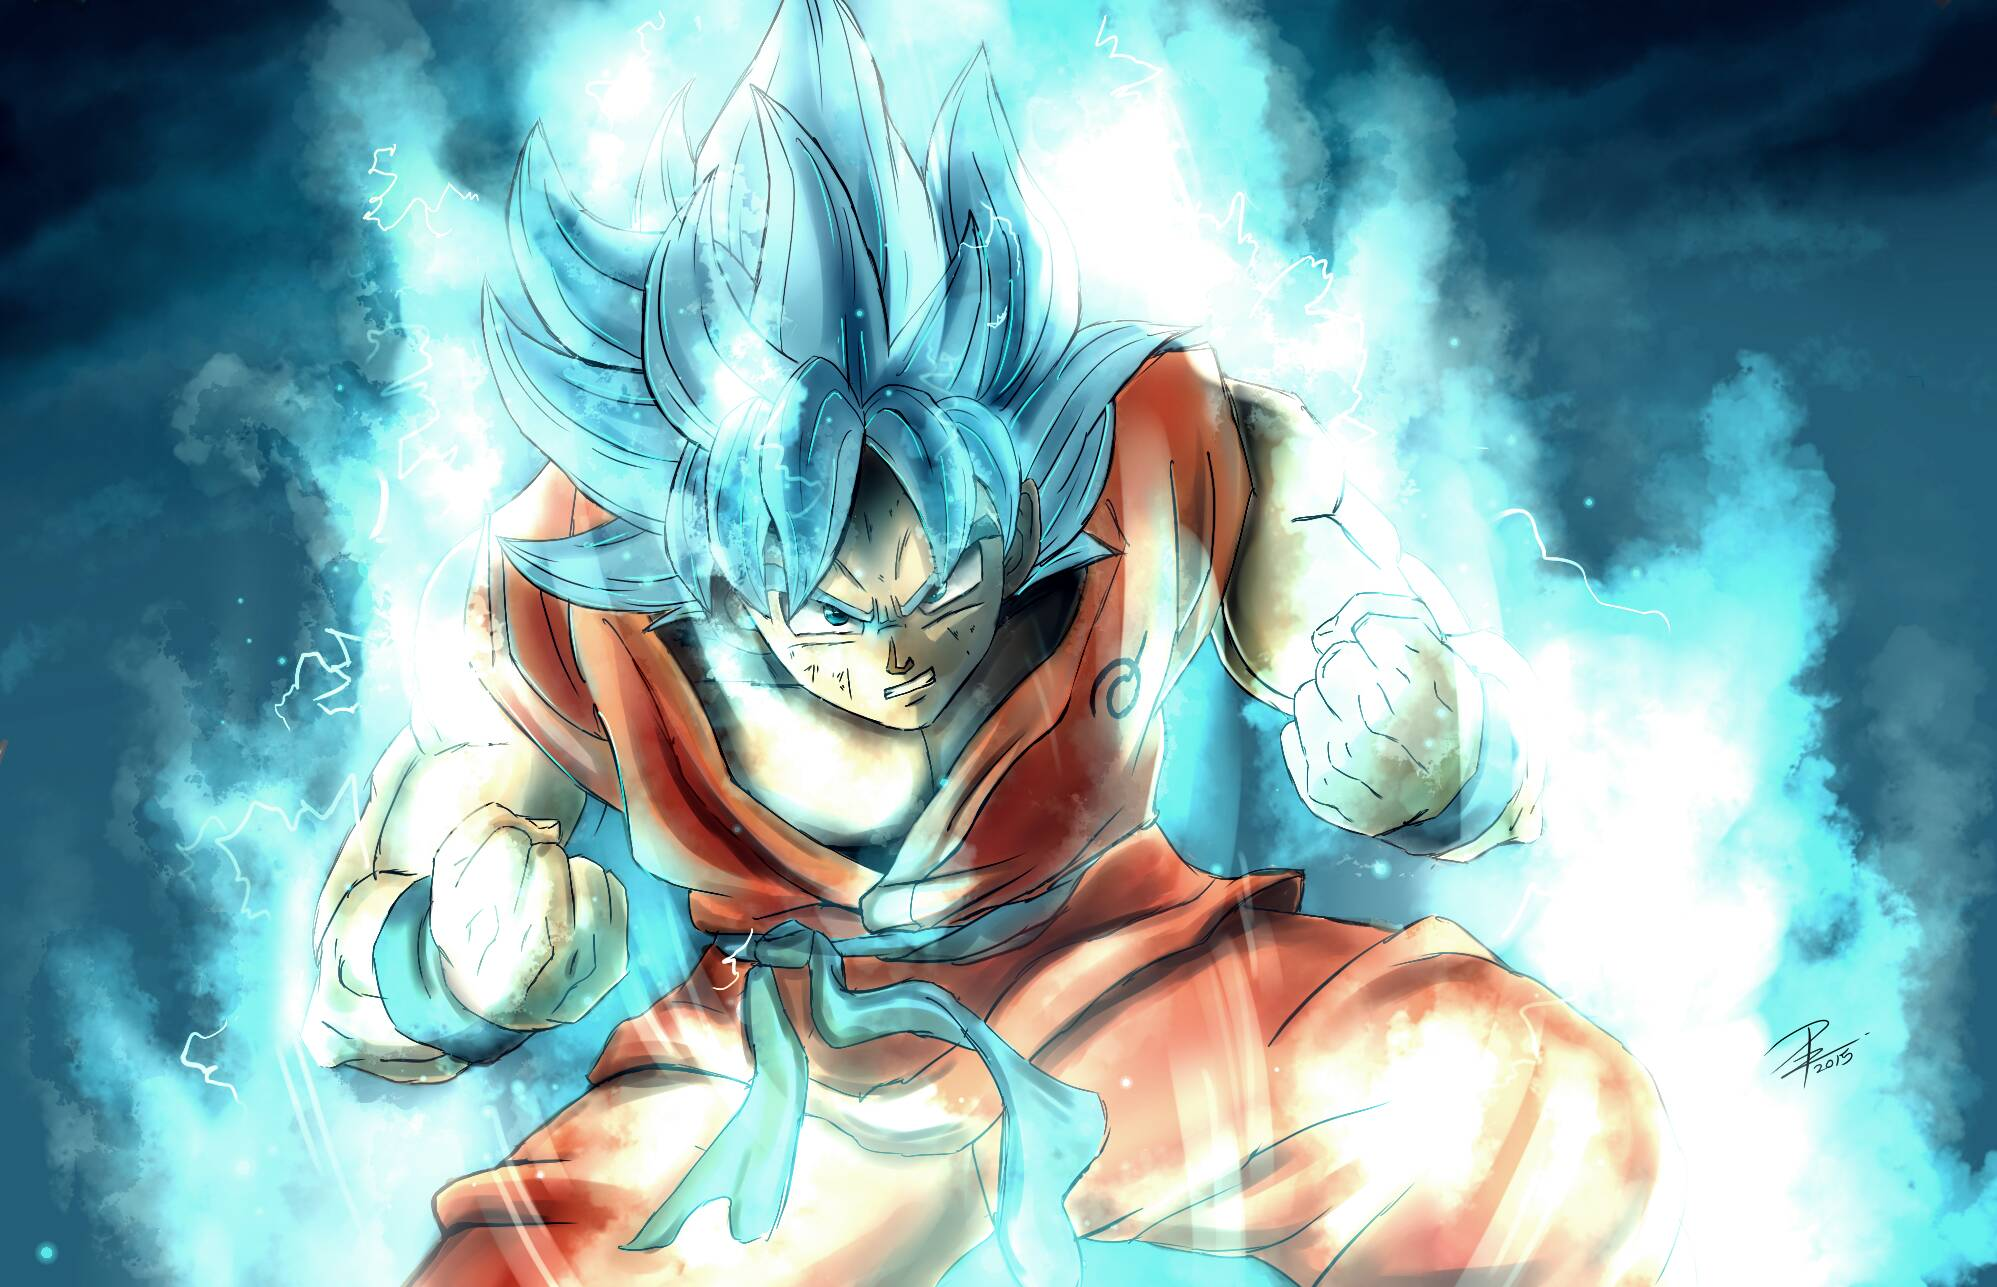 Dragon Ball Dragon Ball Super Goku Super Saiyan Blue 1997x1287